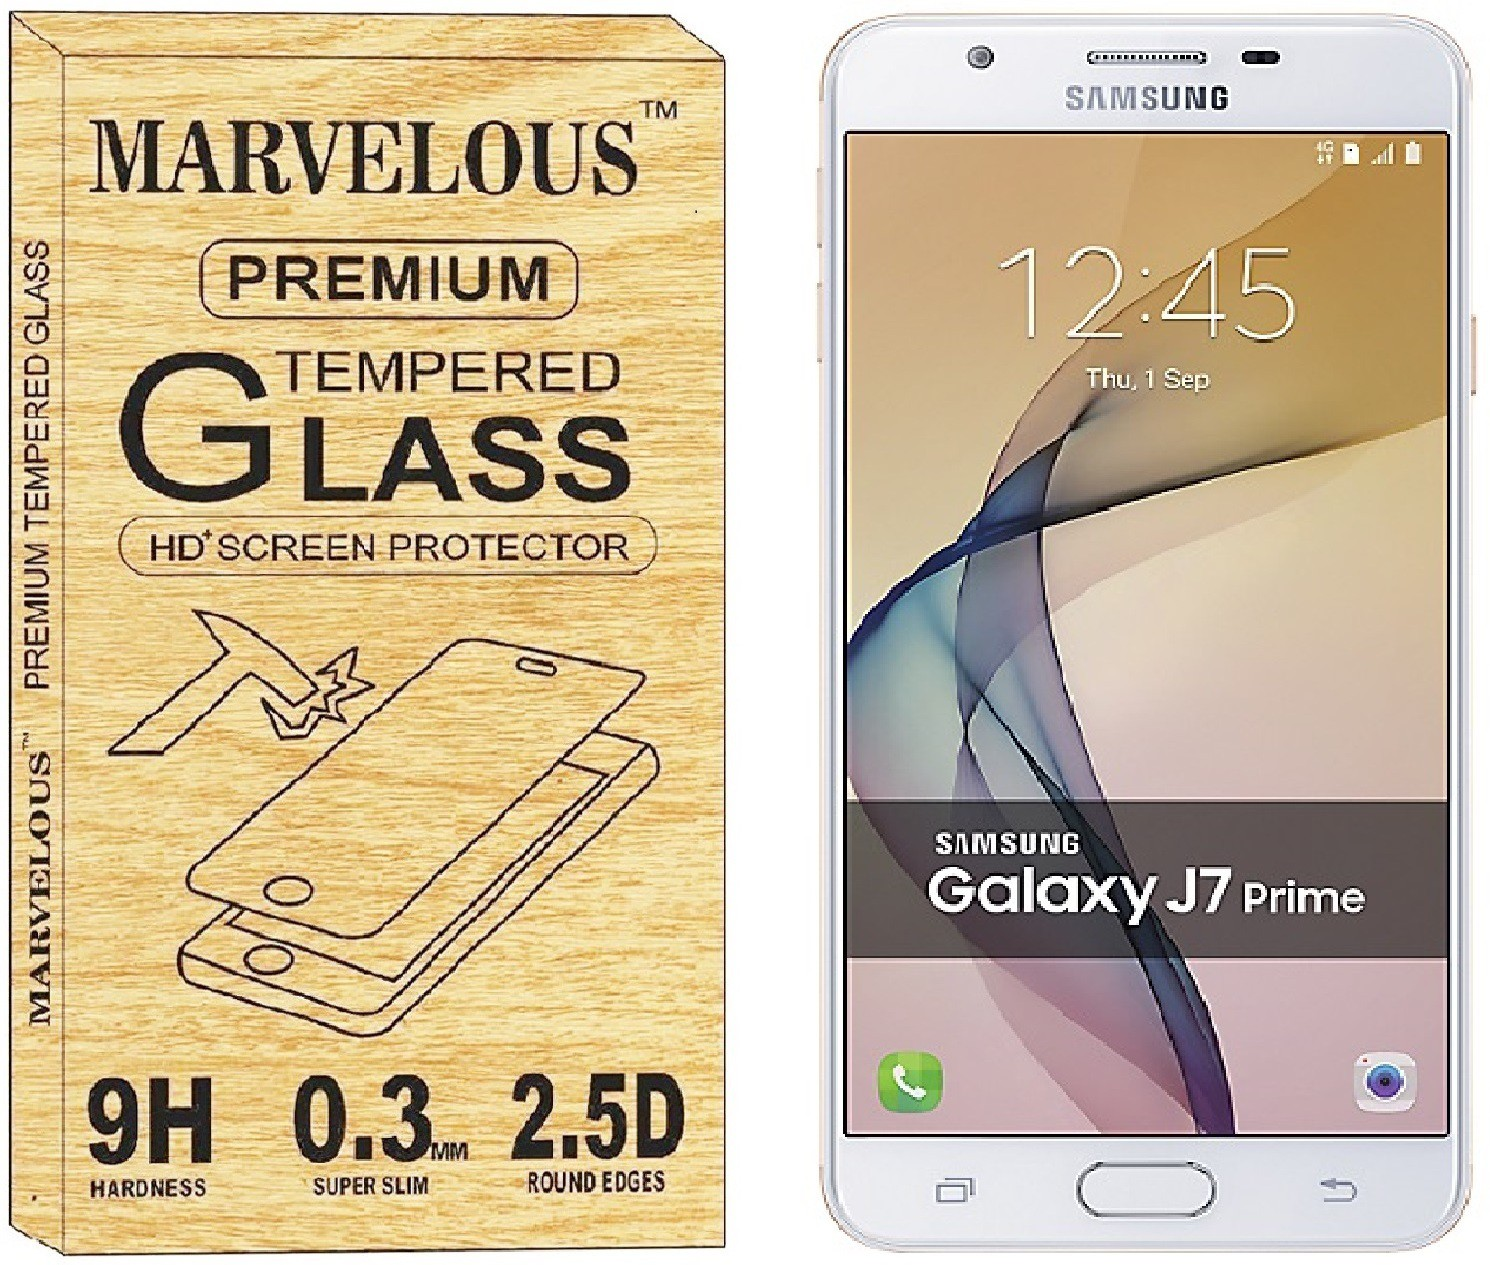 Marvelous Tempered Glass Guard for SAMSUNG Galaxy J7 Prime